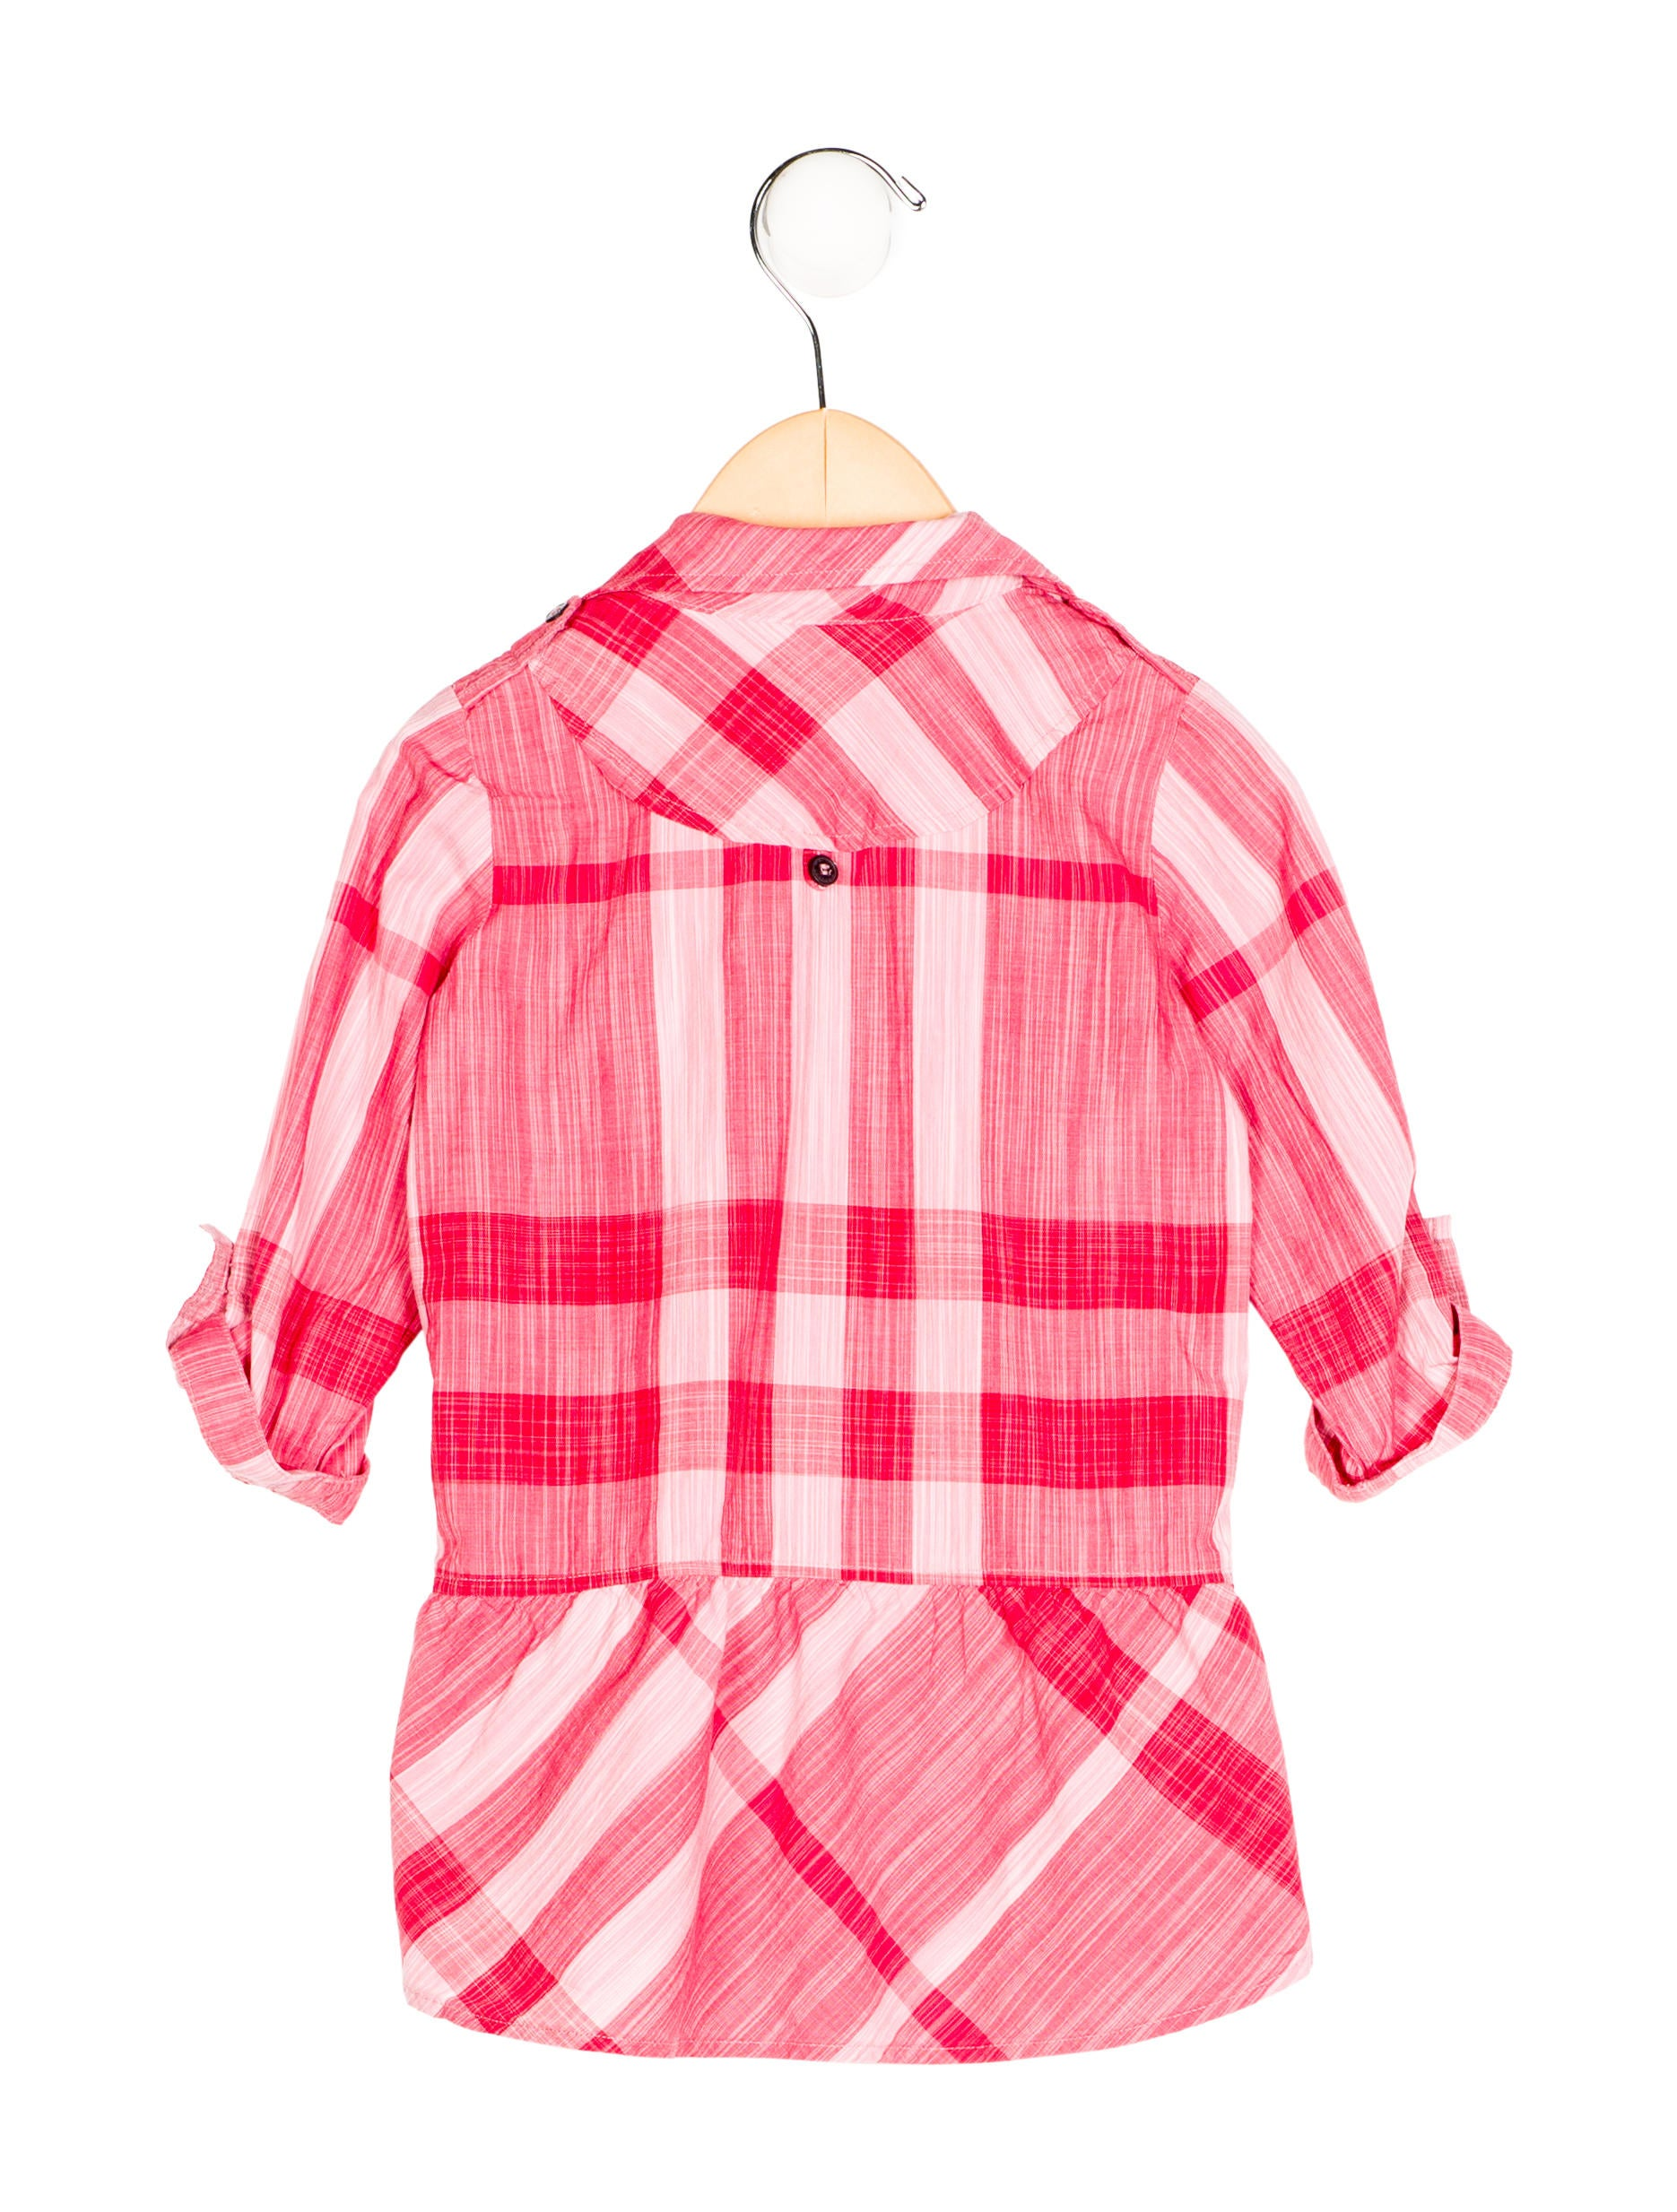 Burberry girls 39 exploded check shirt dress girls for Burberry check shirt dress